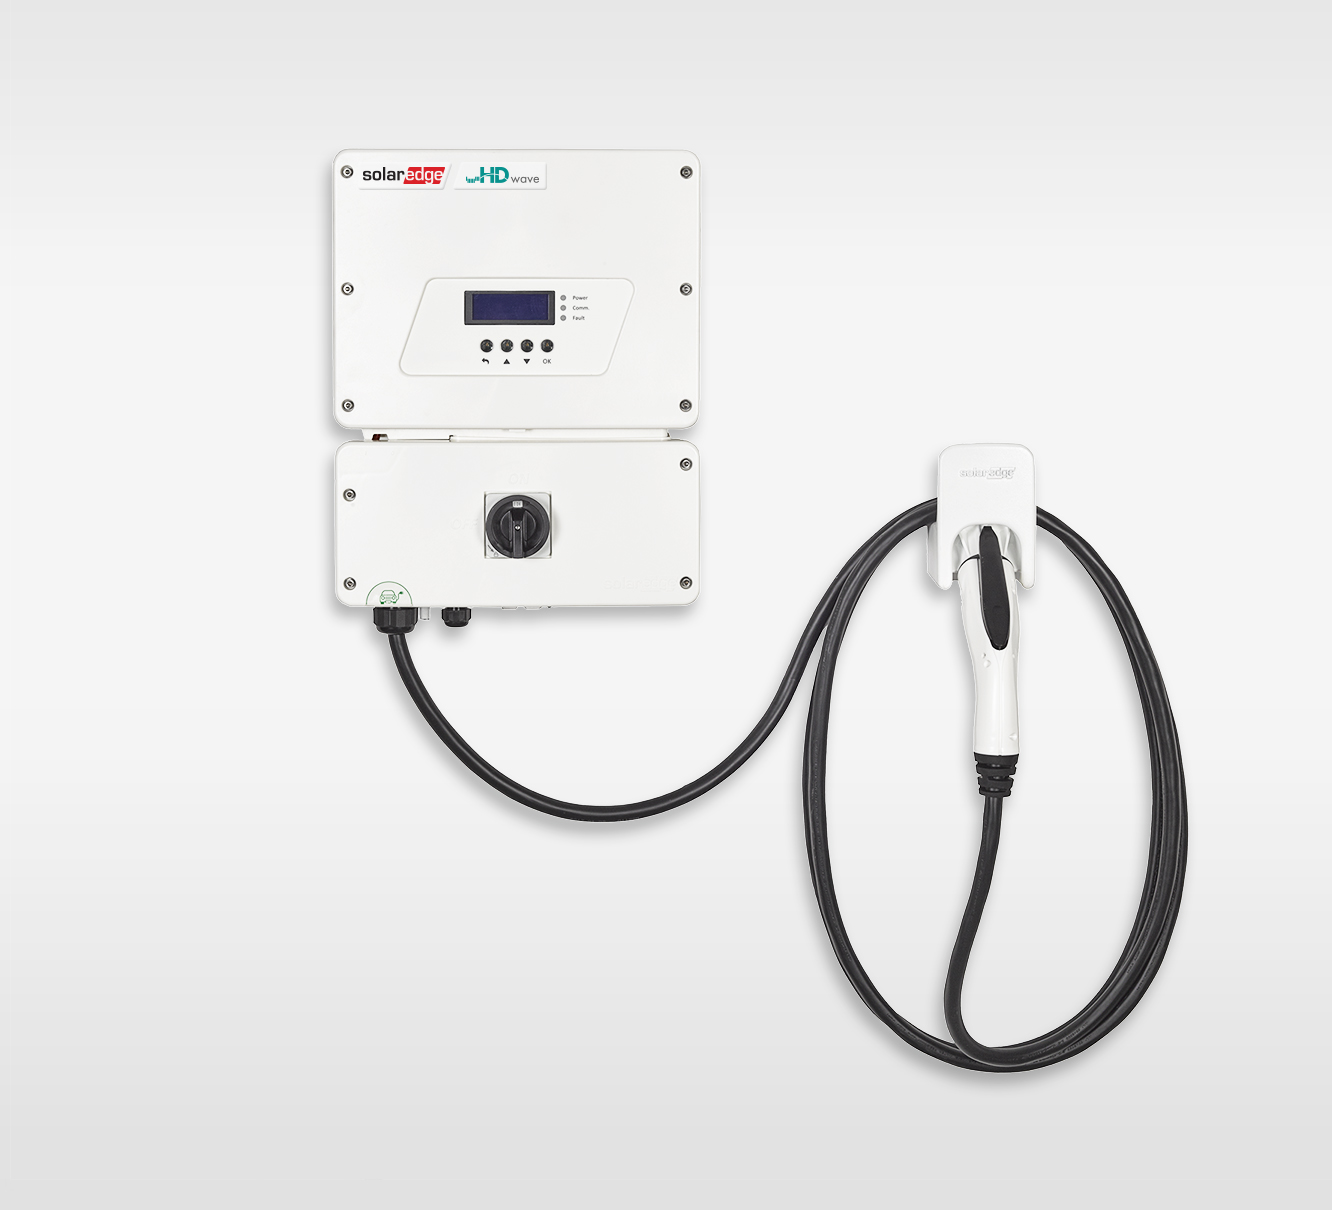 SolarEdge's inverter with an integrated EV charger. Source: SolarEdge